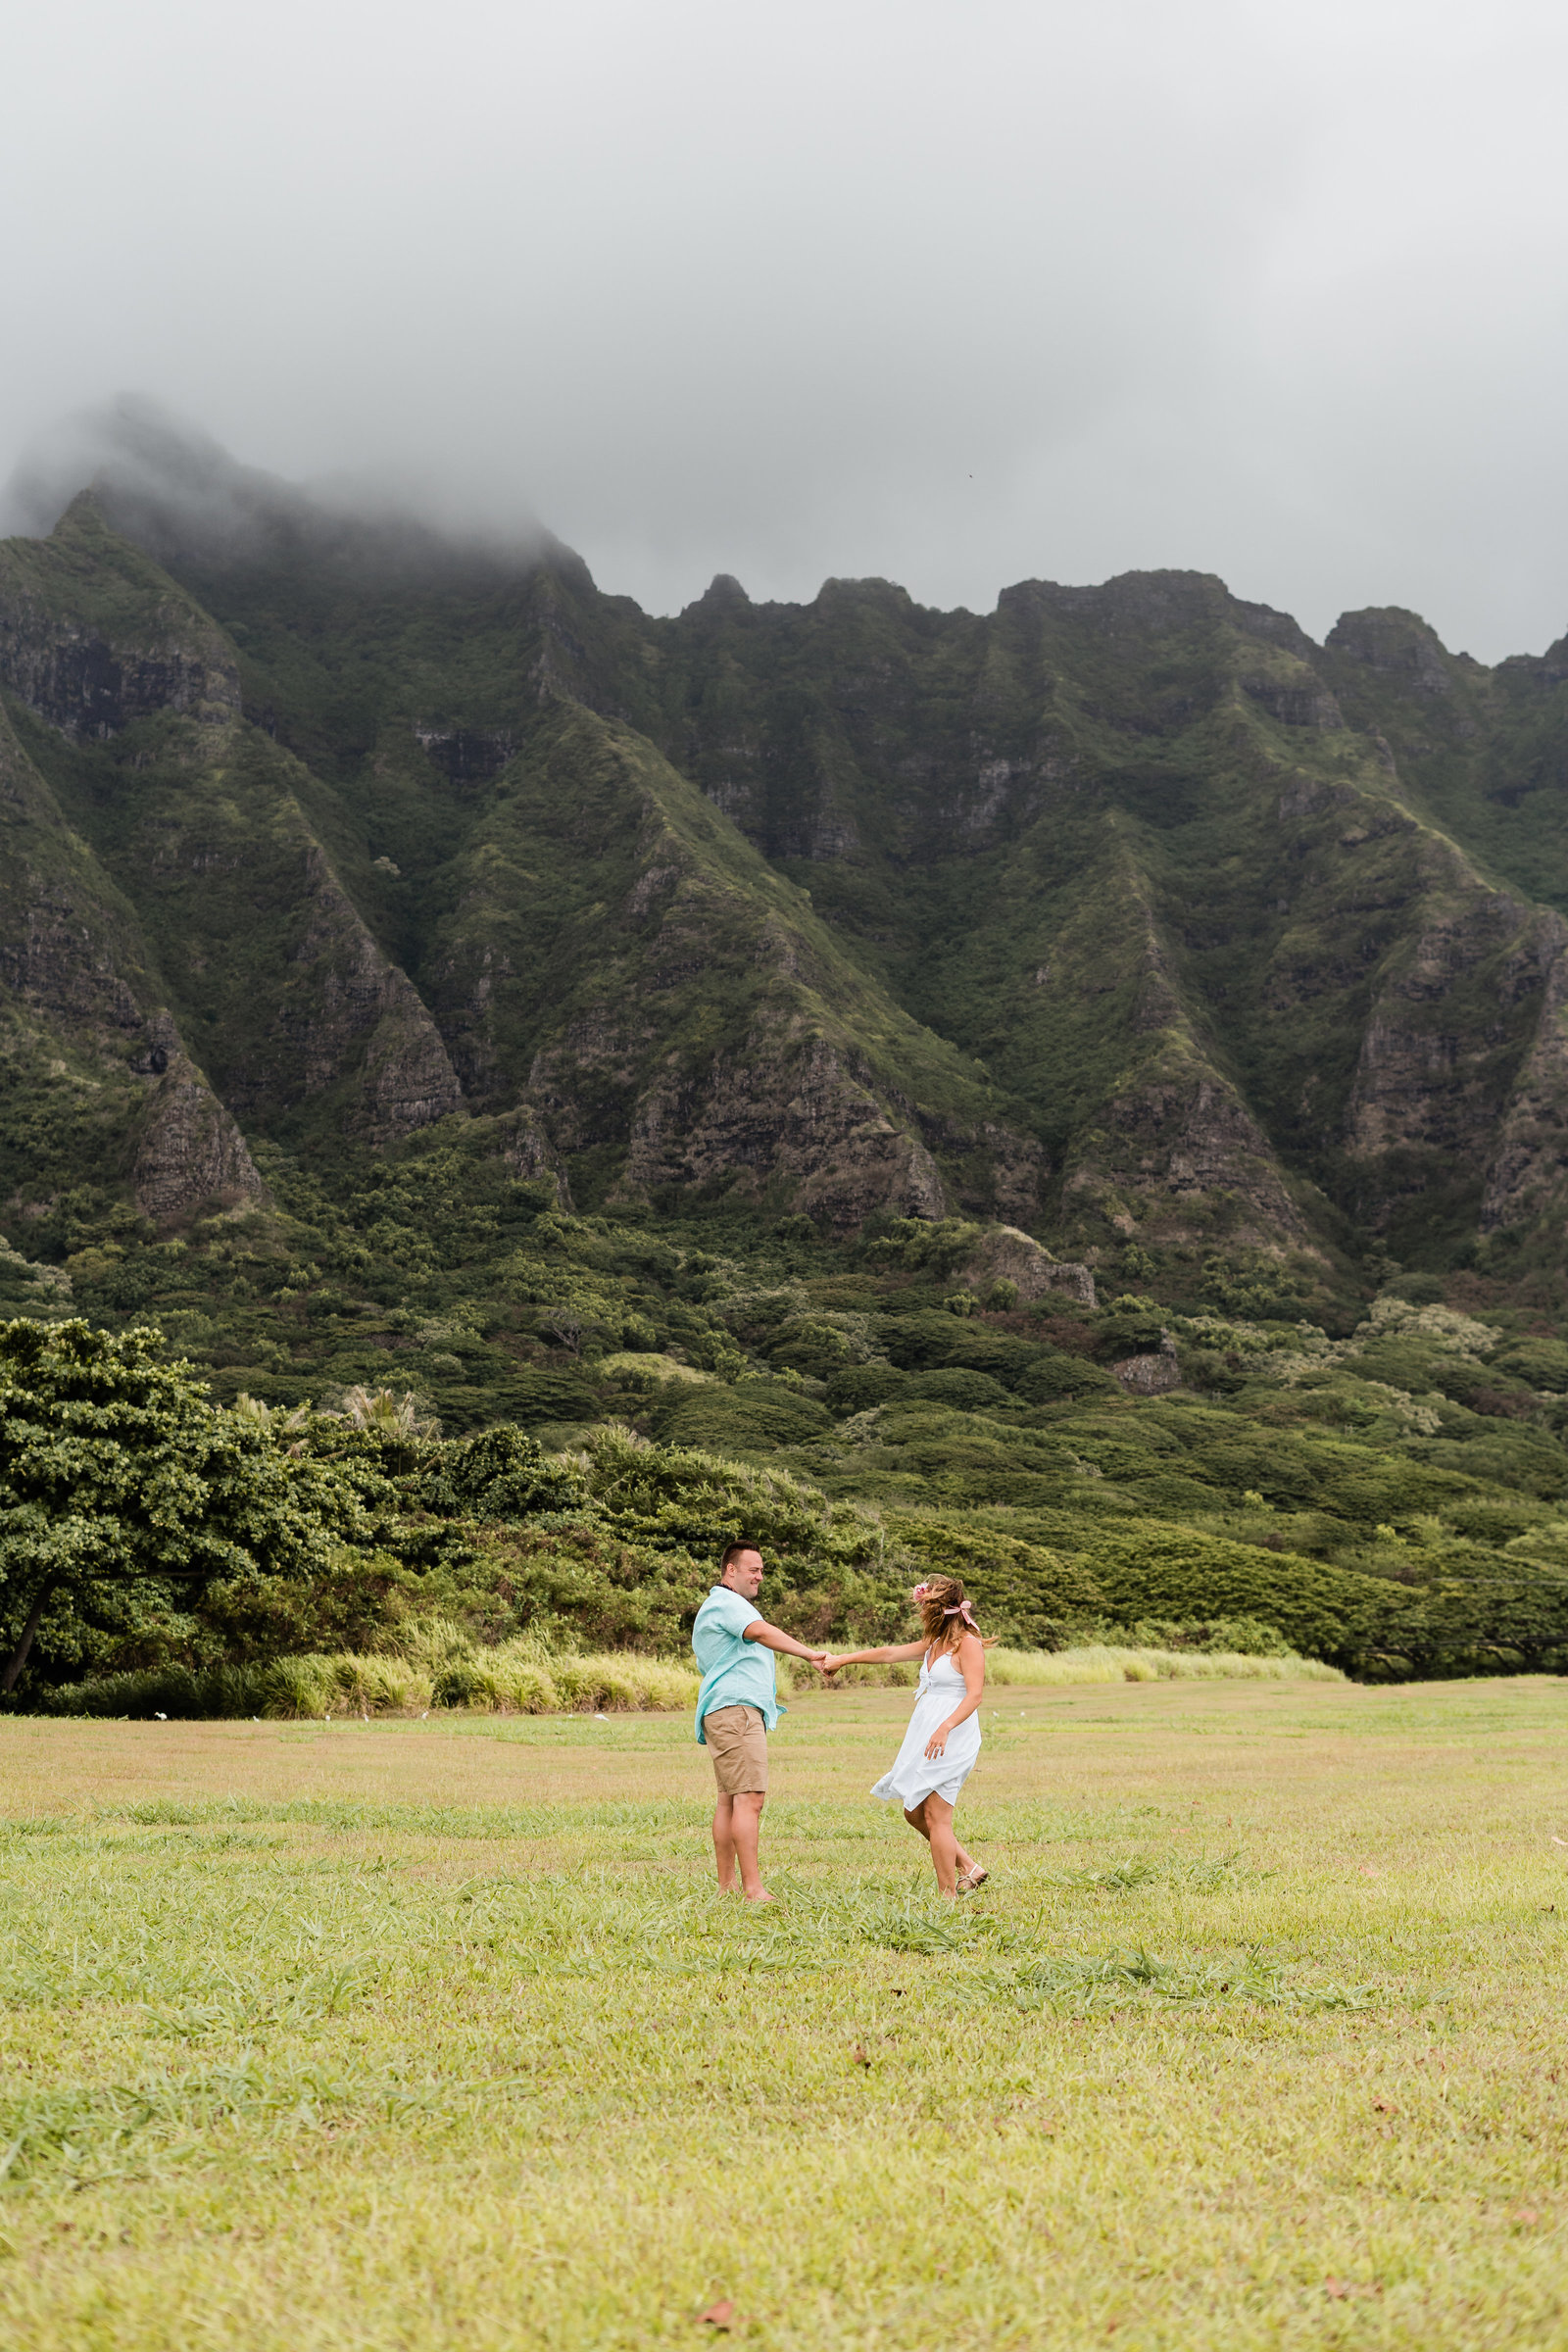 kualoa-ranch-hawaii-family-photo-session-walkers-sydney-and-ryan-photography-17